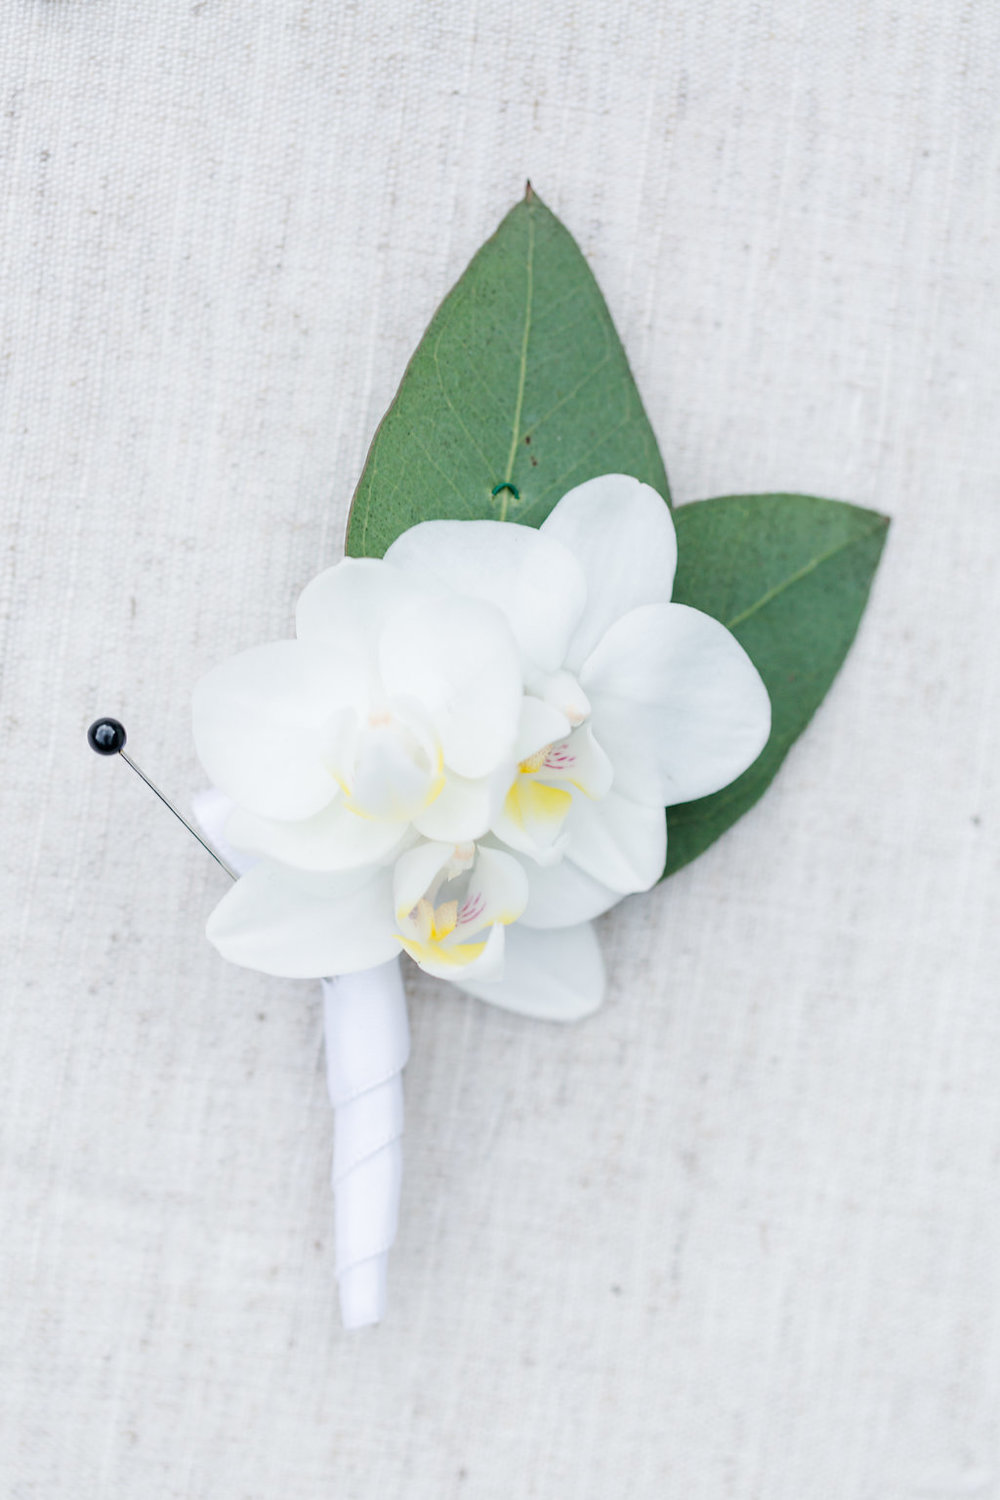 Triple mini Phaleanopsis boutonniere wrapped in ivory satin. Rachel E.H. Photography